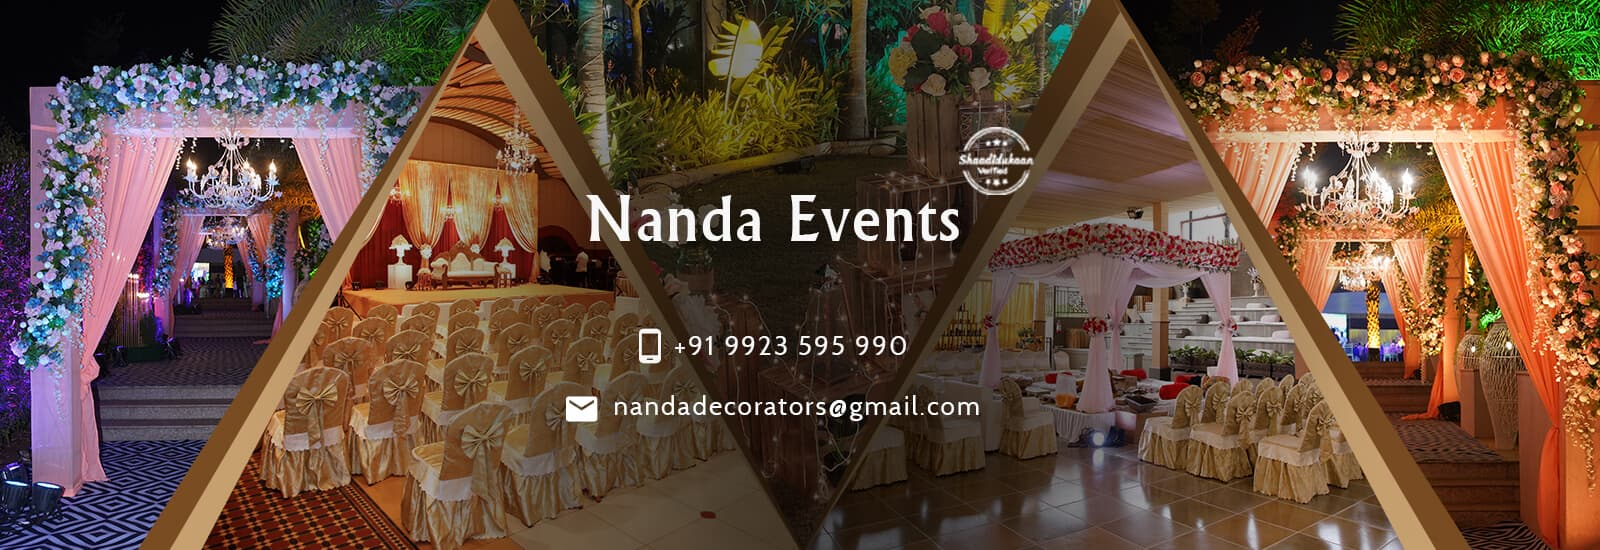 nanda-events